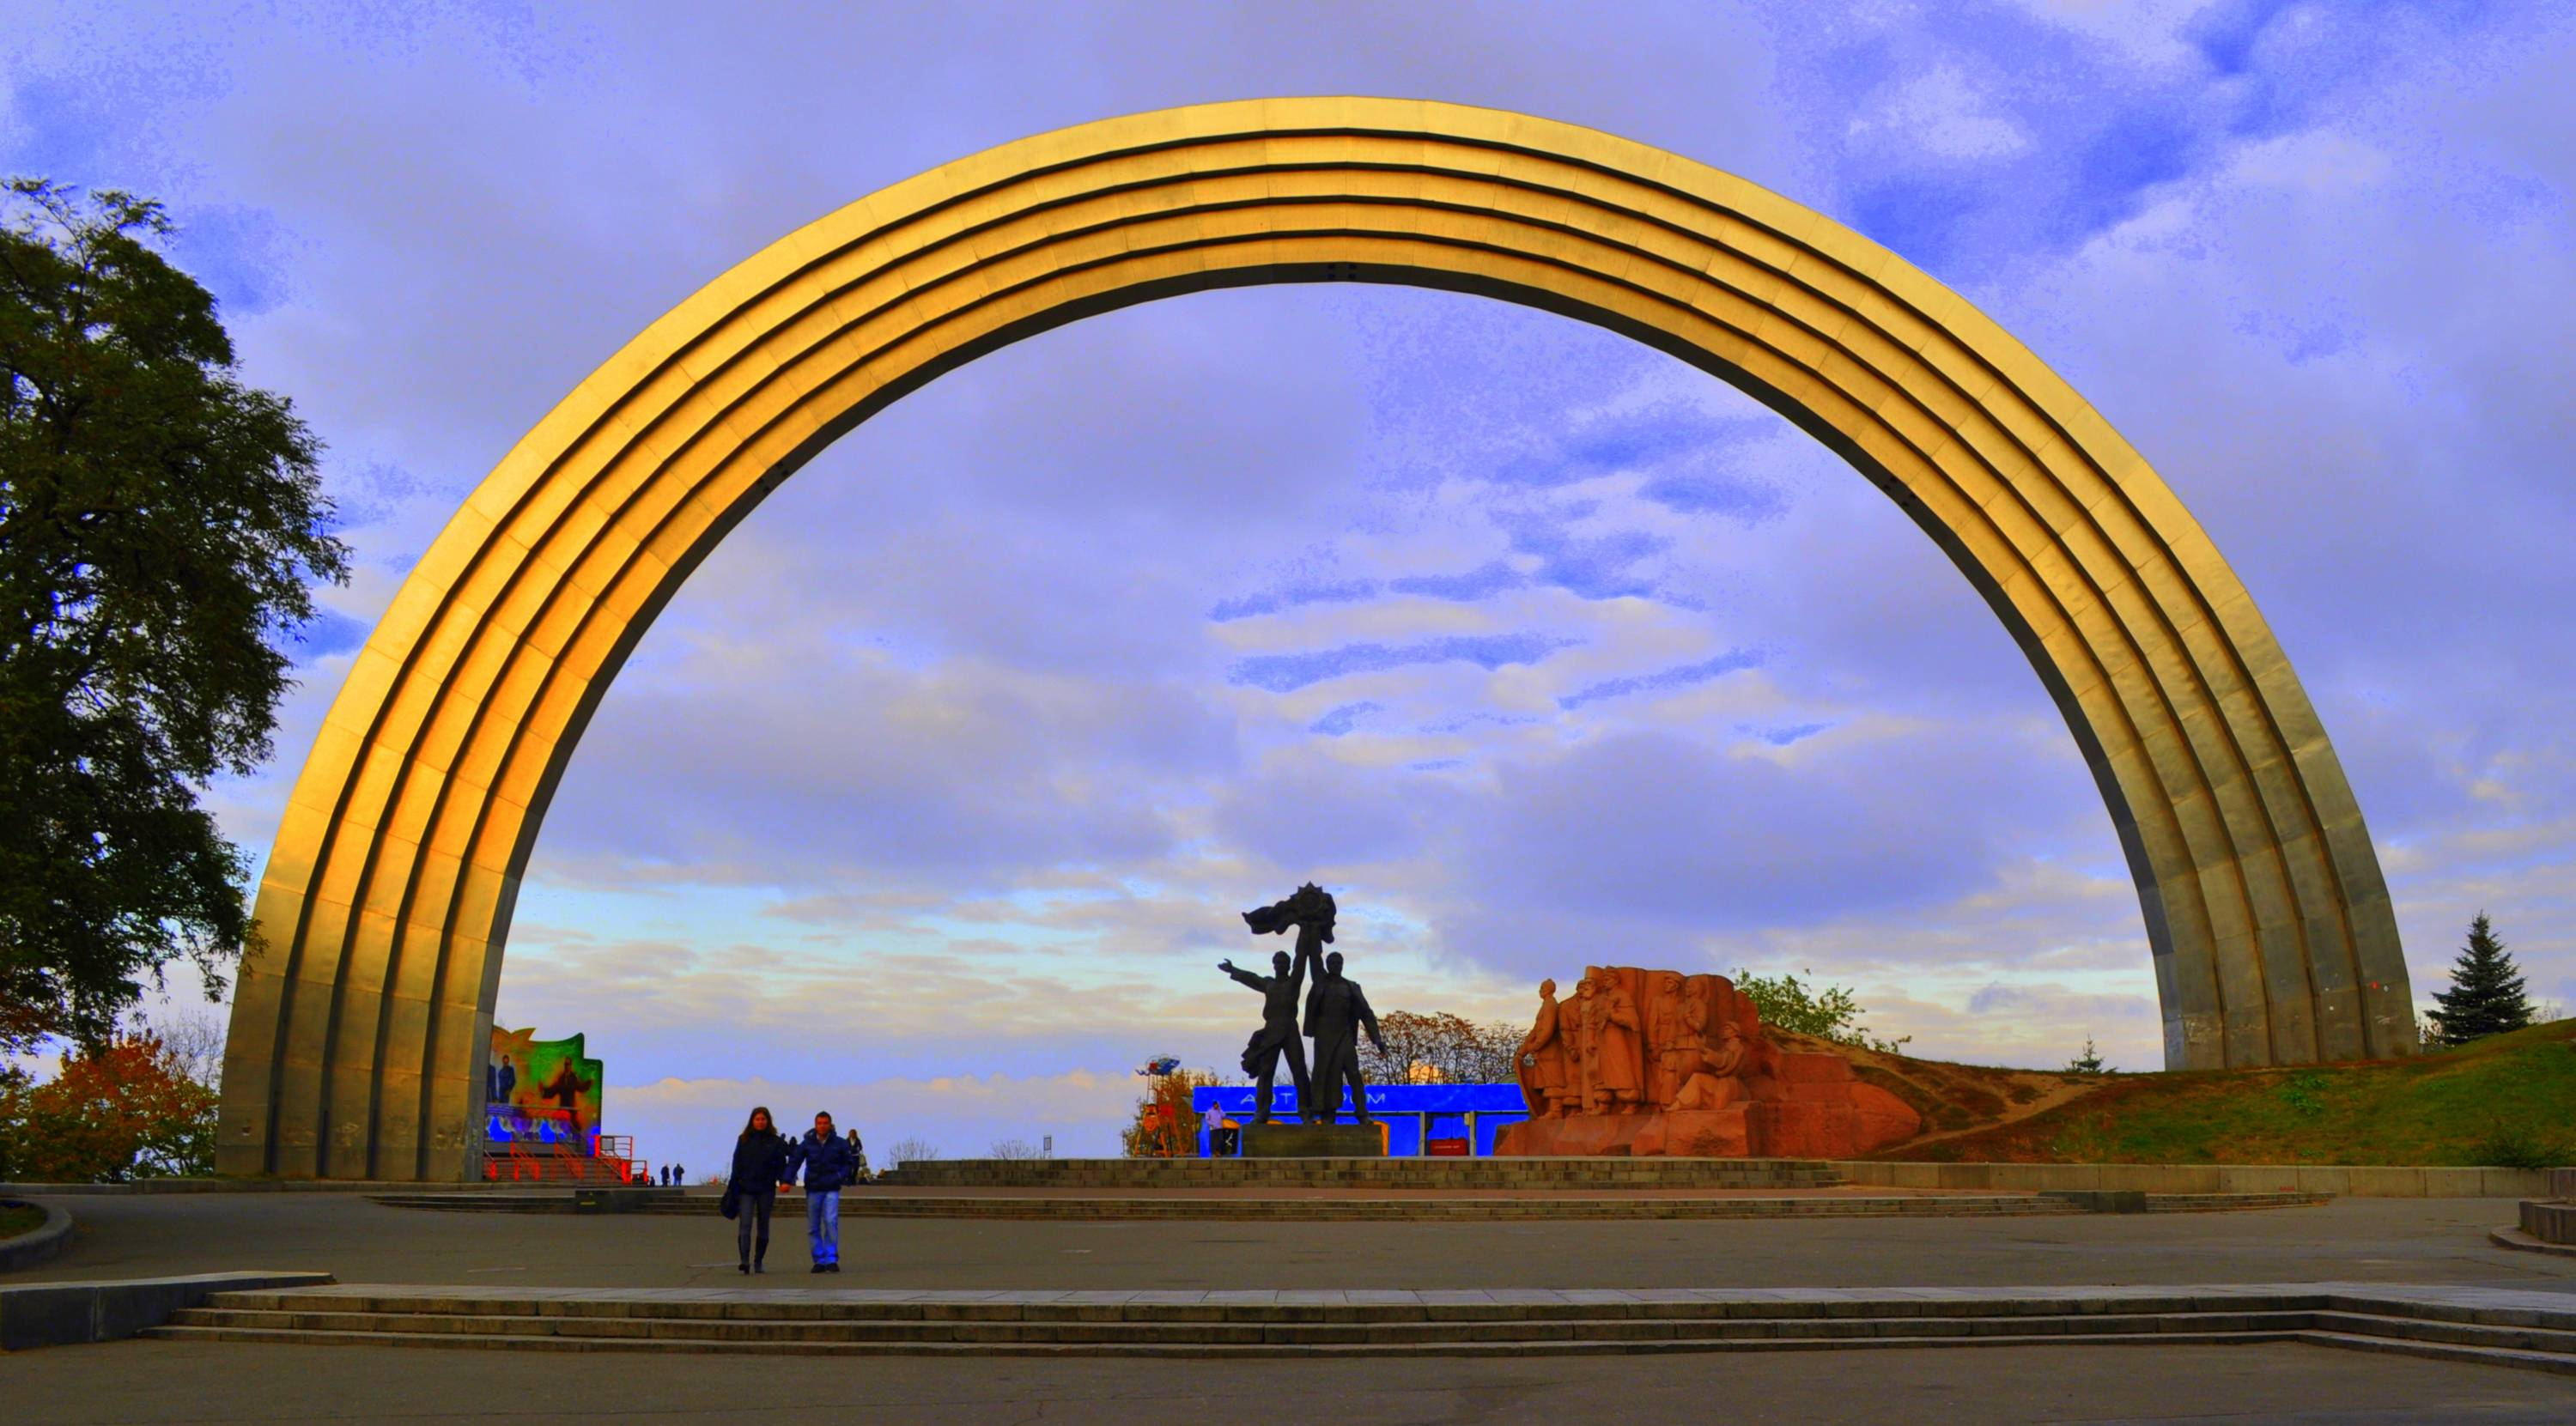 """The Friend of Nations Arch in Kyiv (Kiev) was built in 1982 on the 60th anniversary of the U.S.S.R. and the 1,500th anniversary of the city of Kyiv, commemorating the friendship between Ukraine and Russia,"" Mike Dixon said."